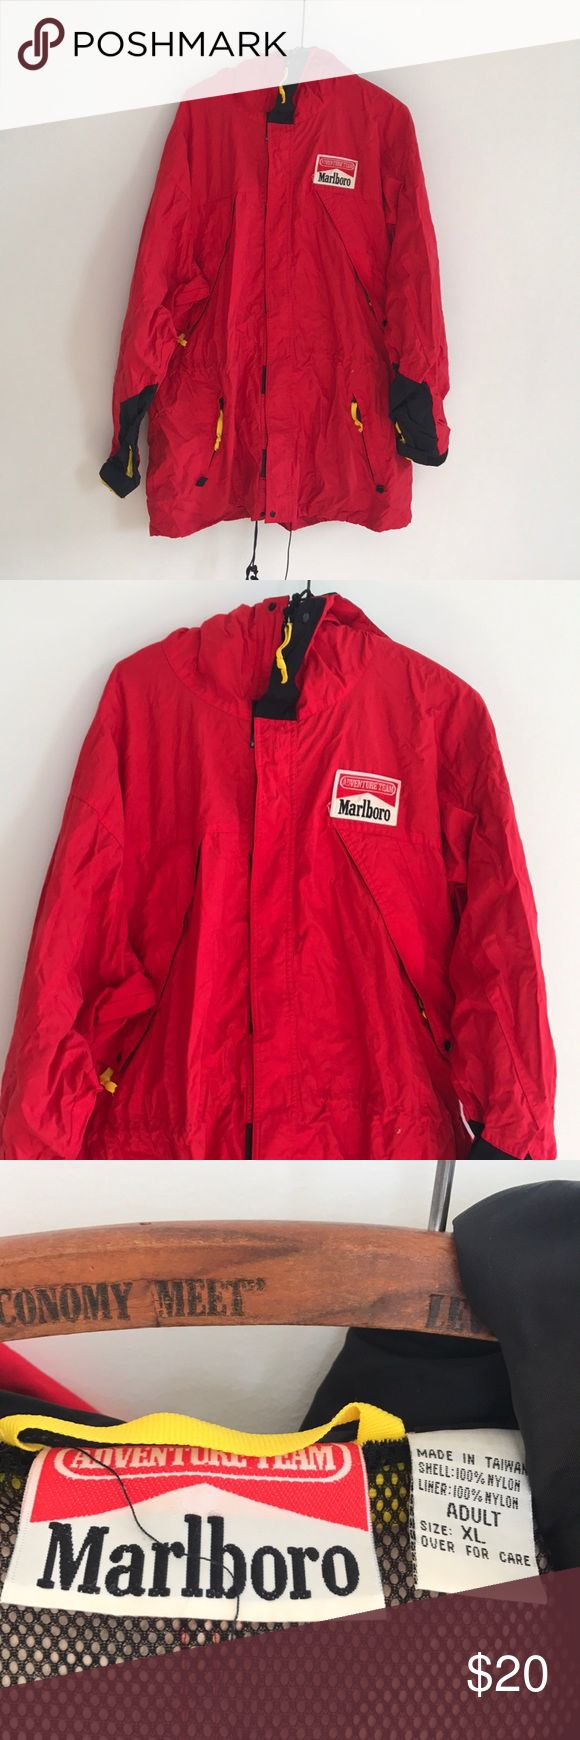 Marlboro rain jacket Vintage jacket in used condition marlboro Jackets & Coats Windbreakers